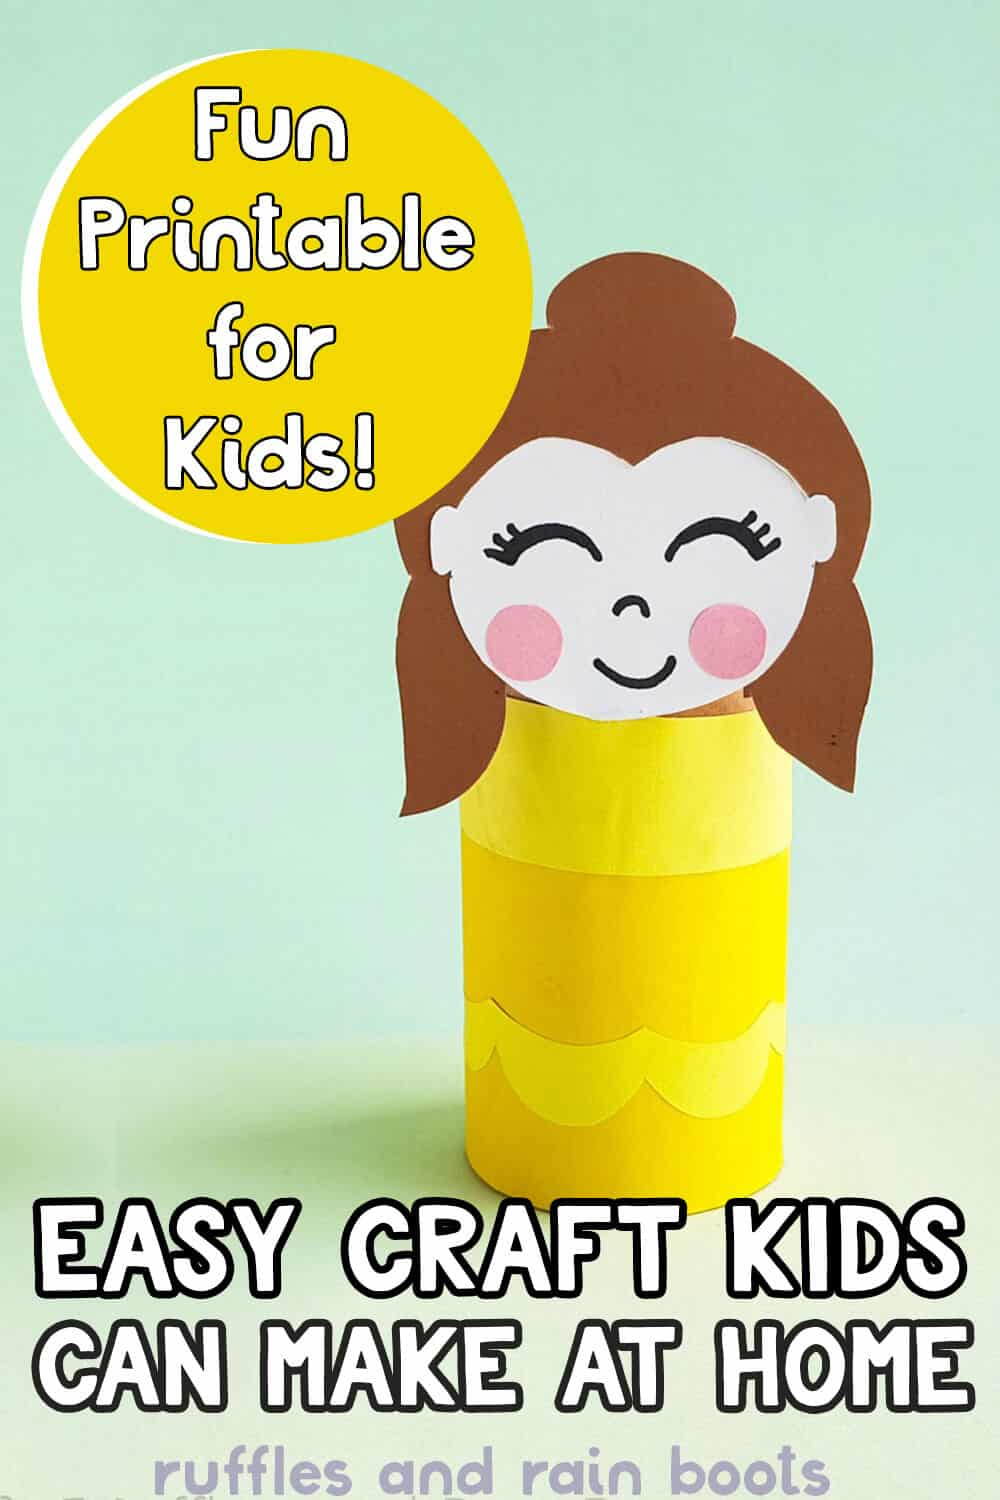 princess belle printable for paper roll with text which reads fun easy craft kids can make at home